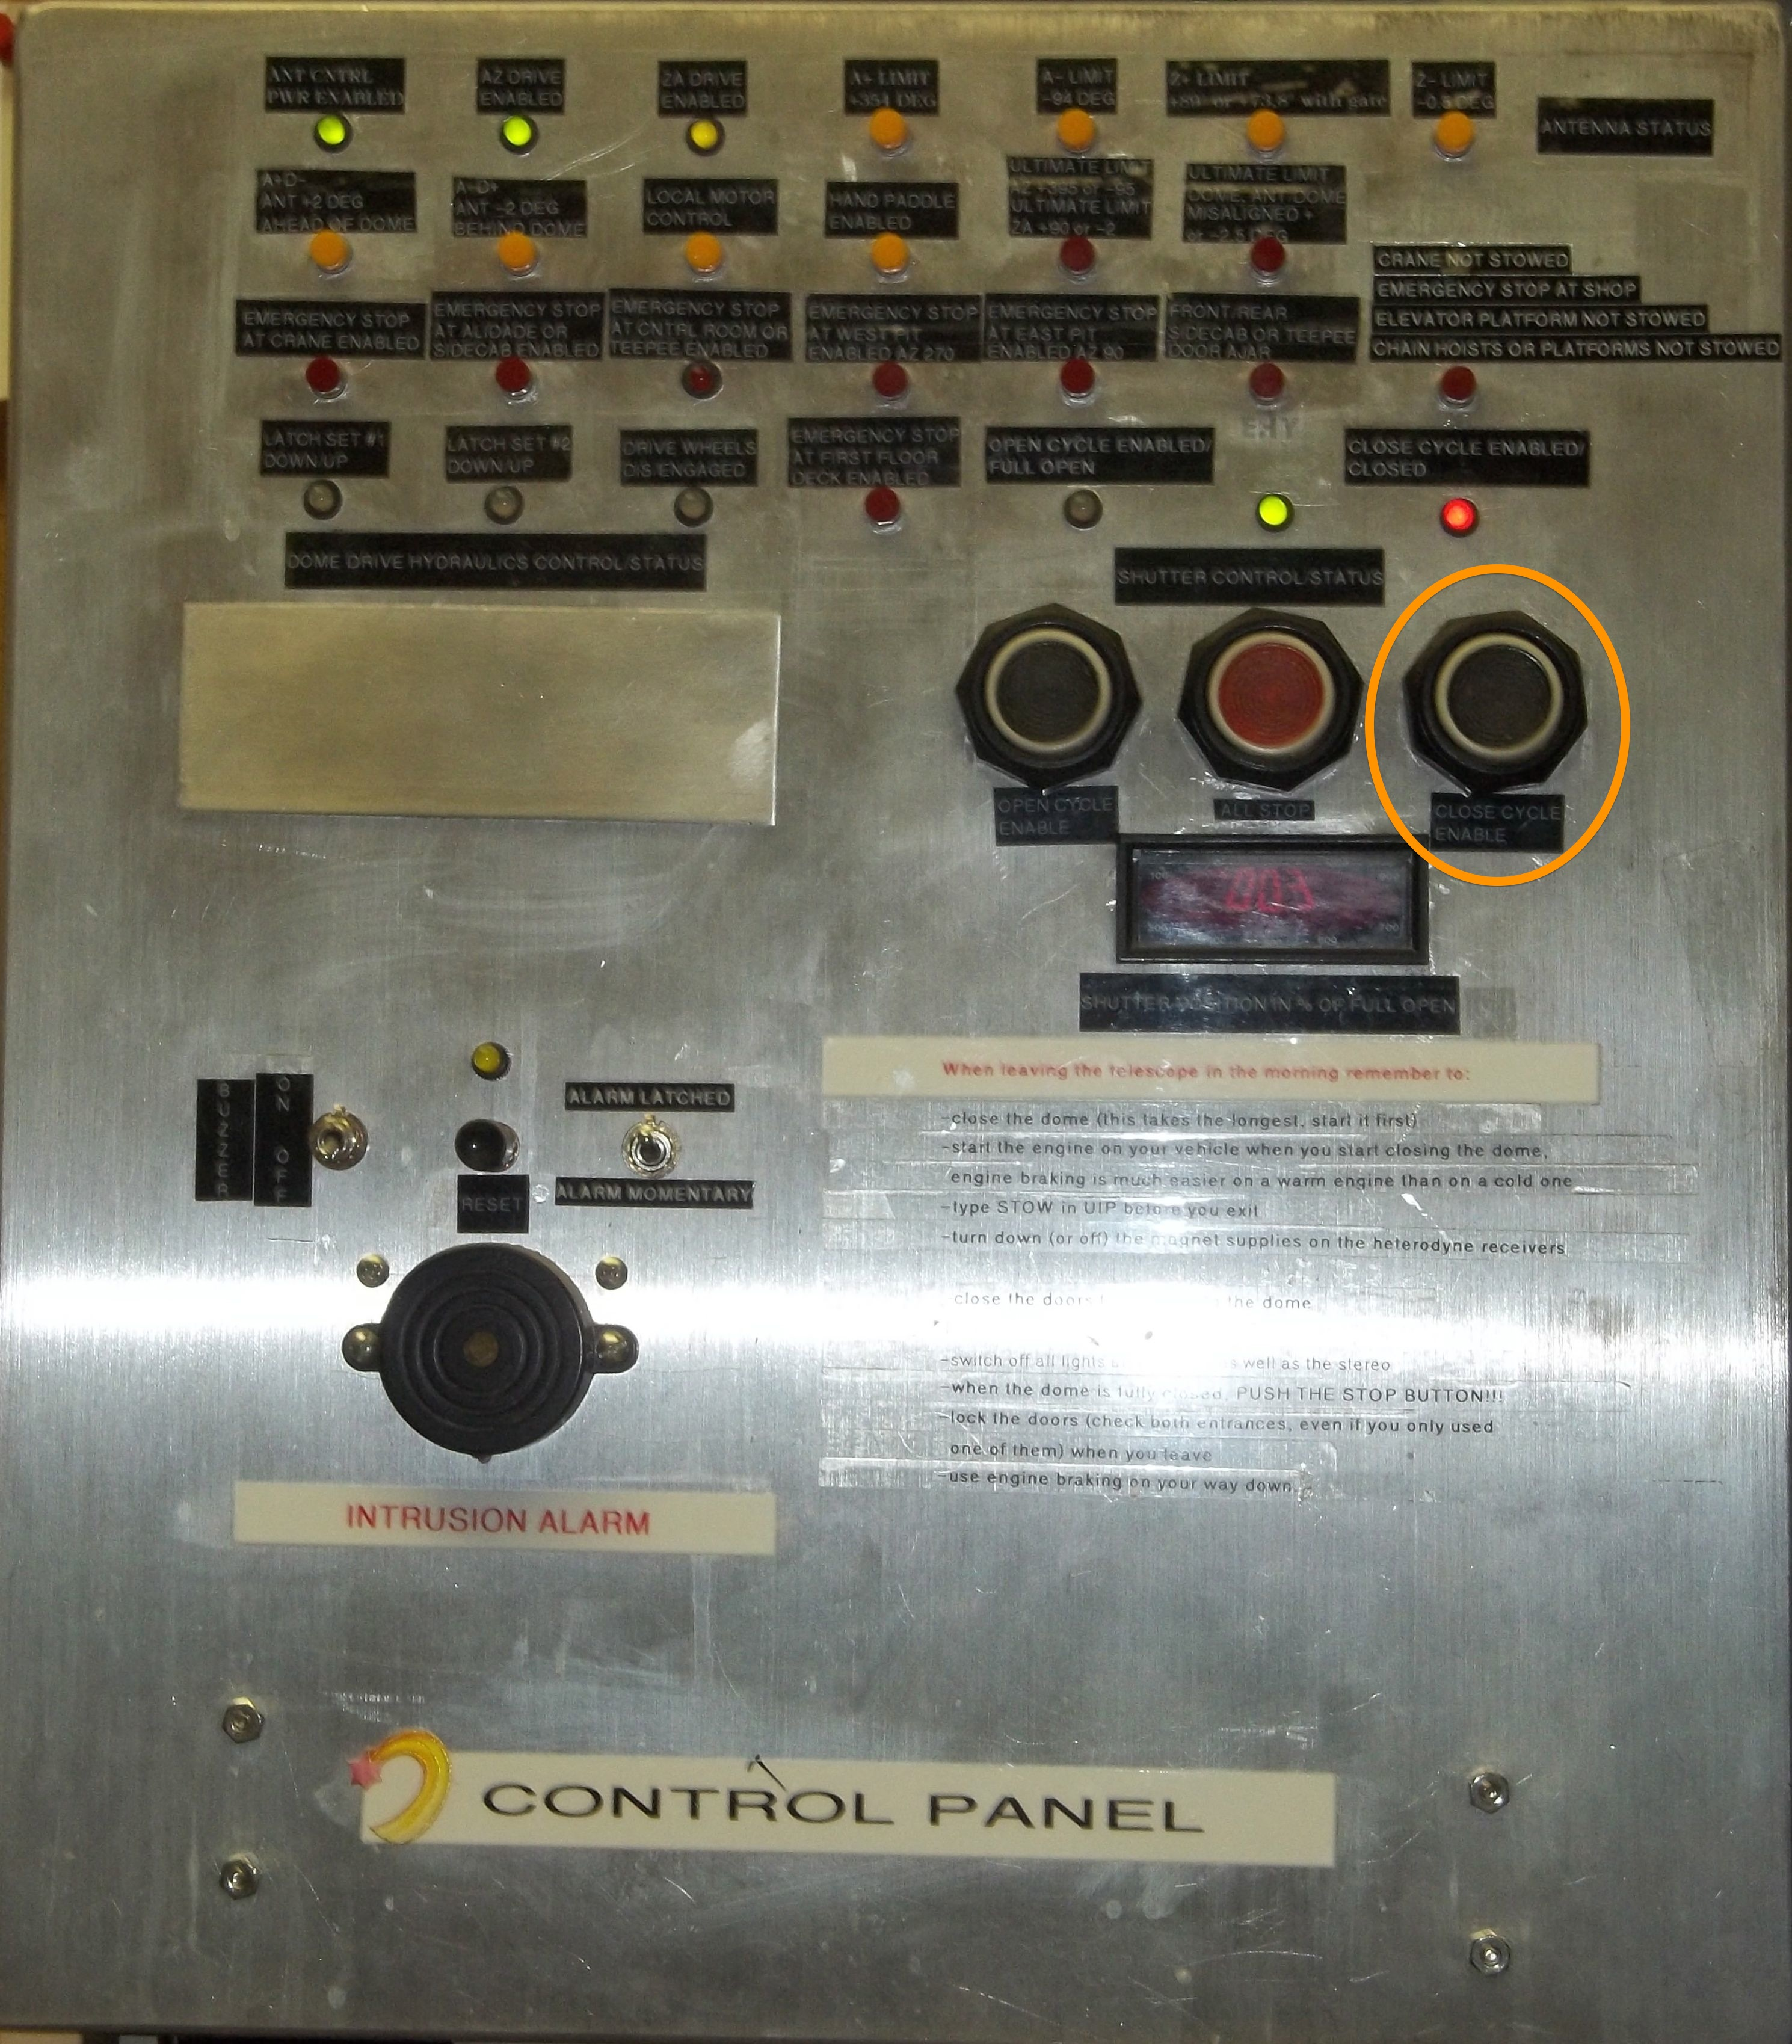 shutter-panel-control-room-note.jpg